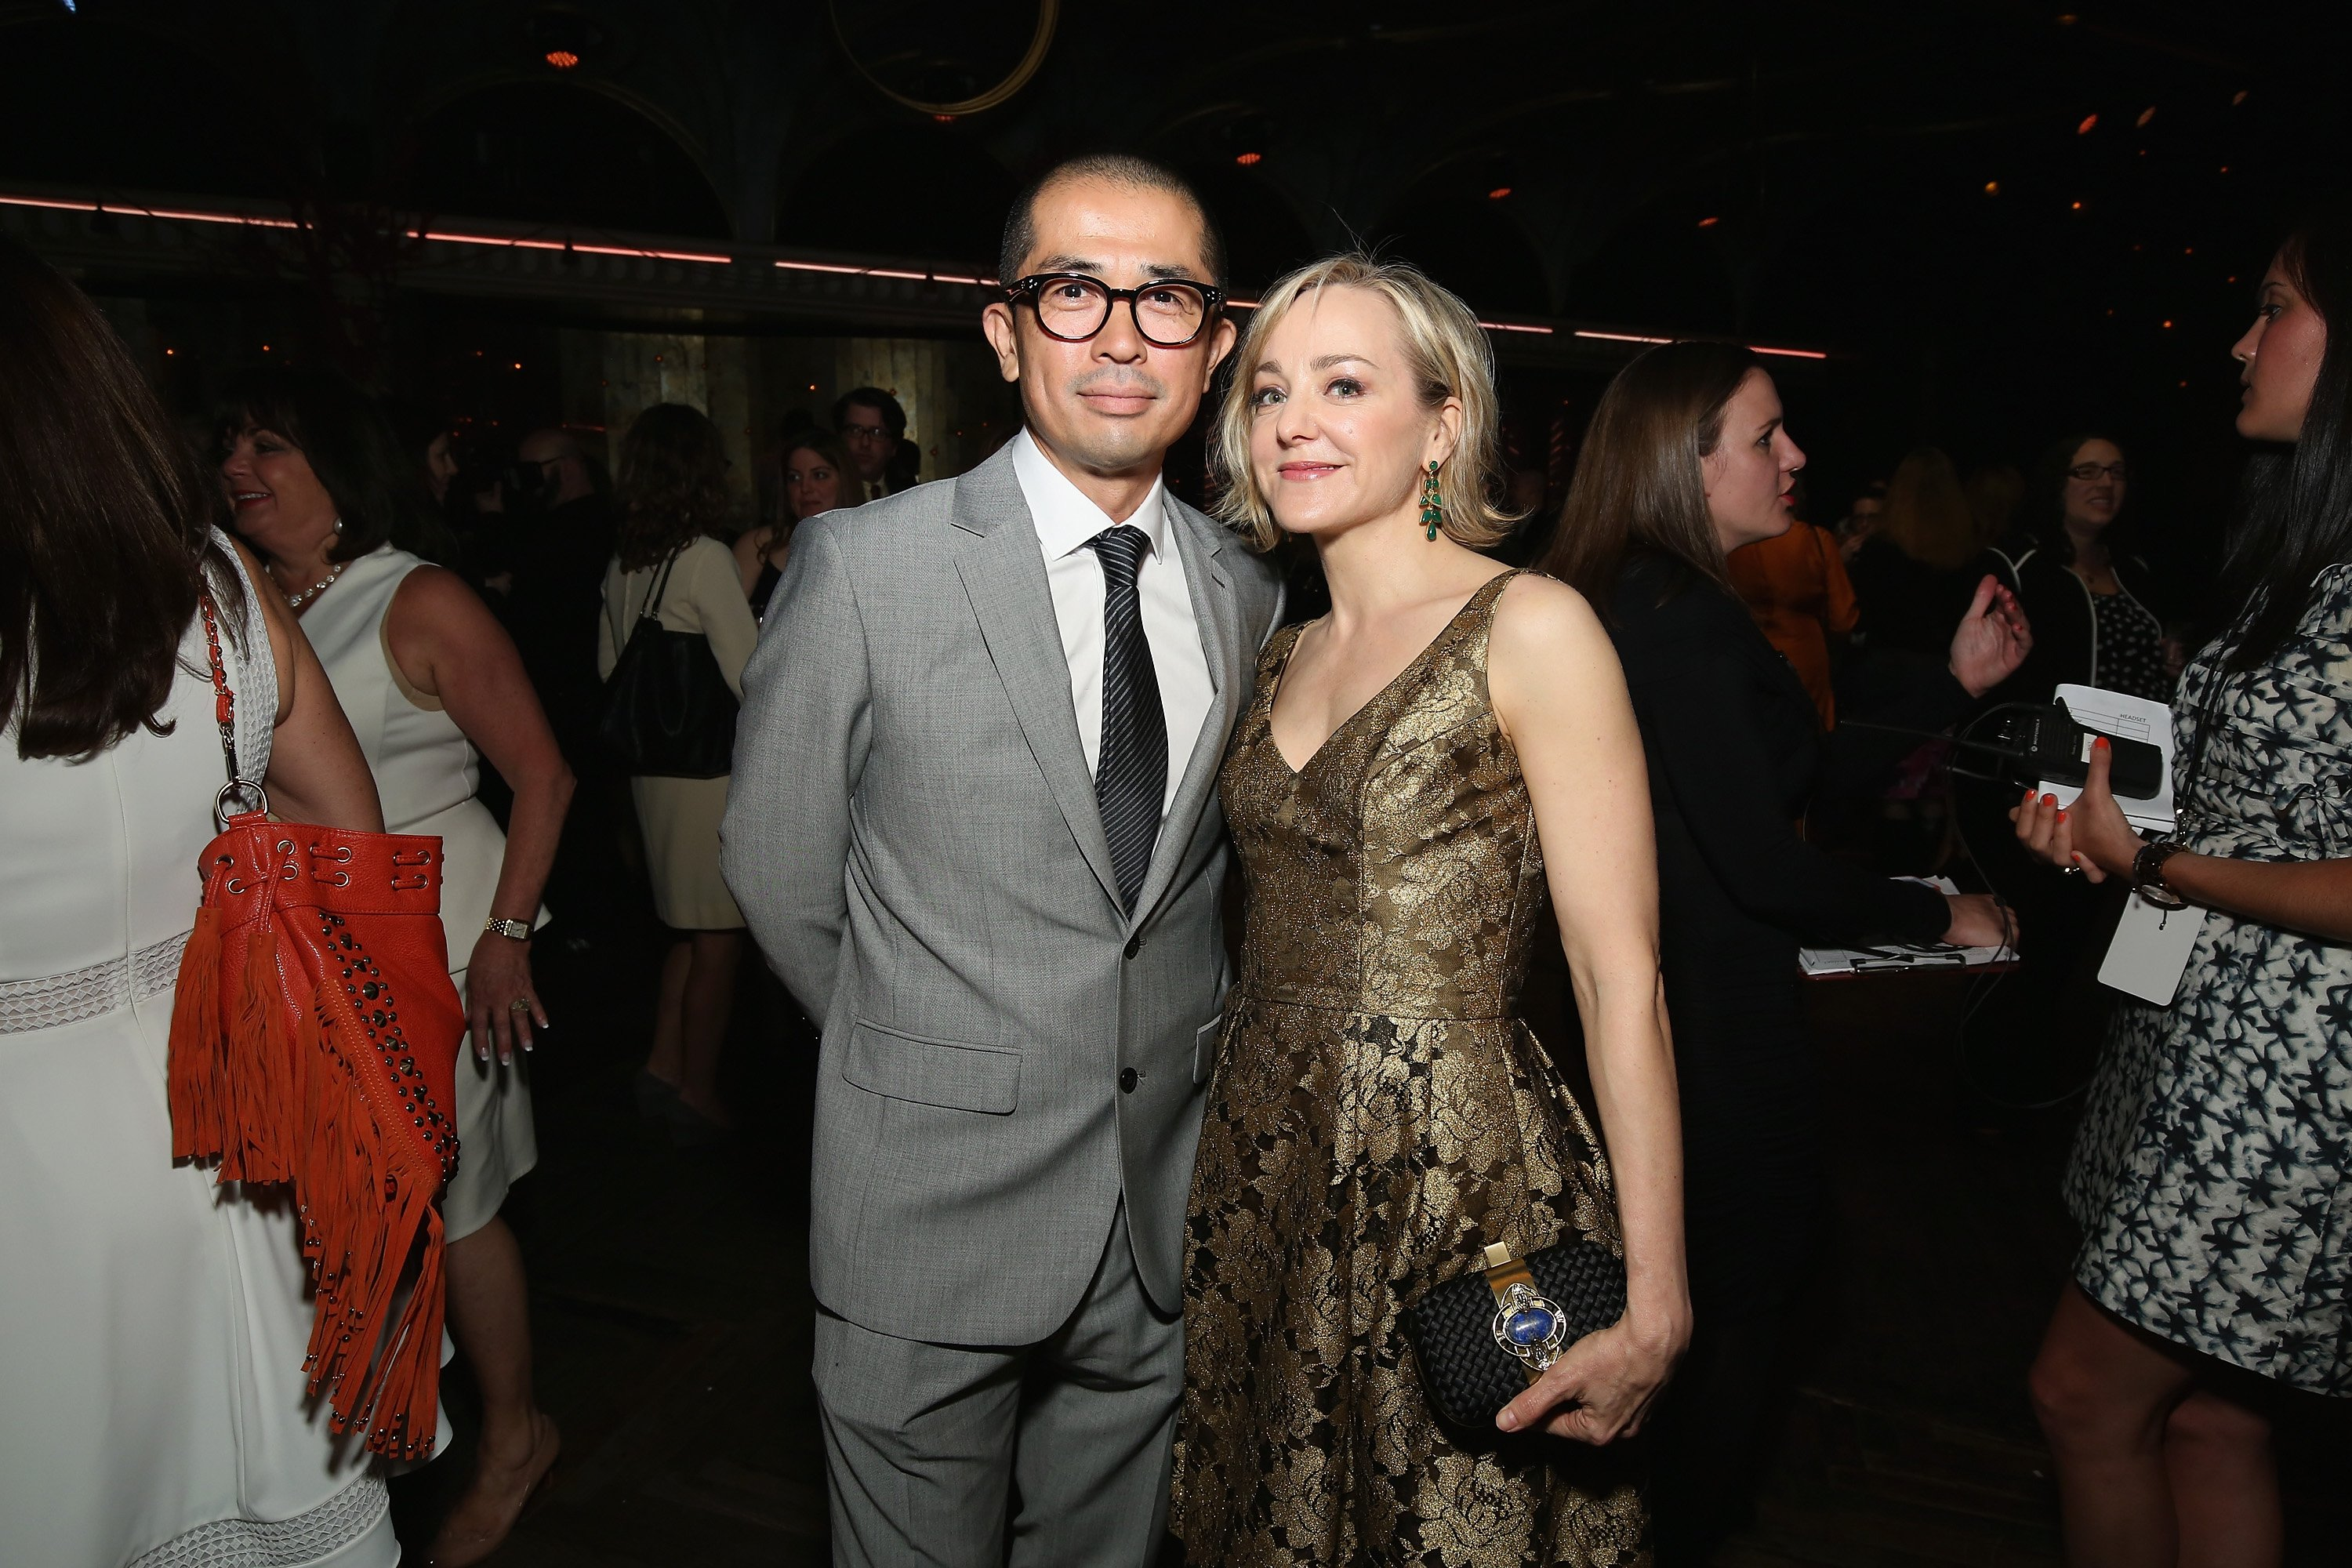 Geneva Carr and Yuji Yamazaki attend the 2015 Tony Honors Cocktail Party at Diamond Horseshoe at the Paramount Hotel on June 1, 2015 in New York City. | Source: Getty Images.